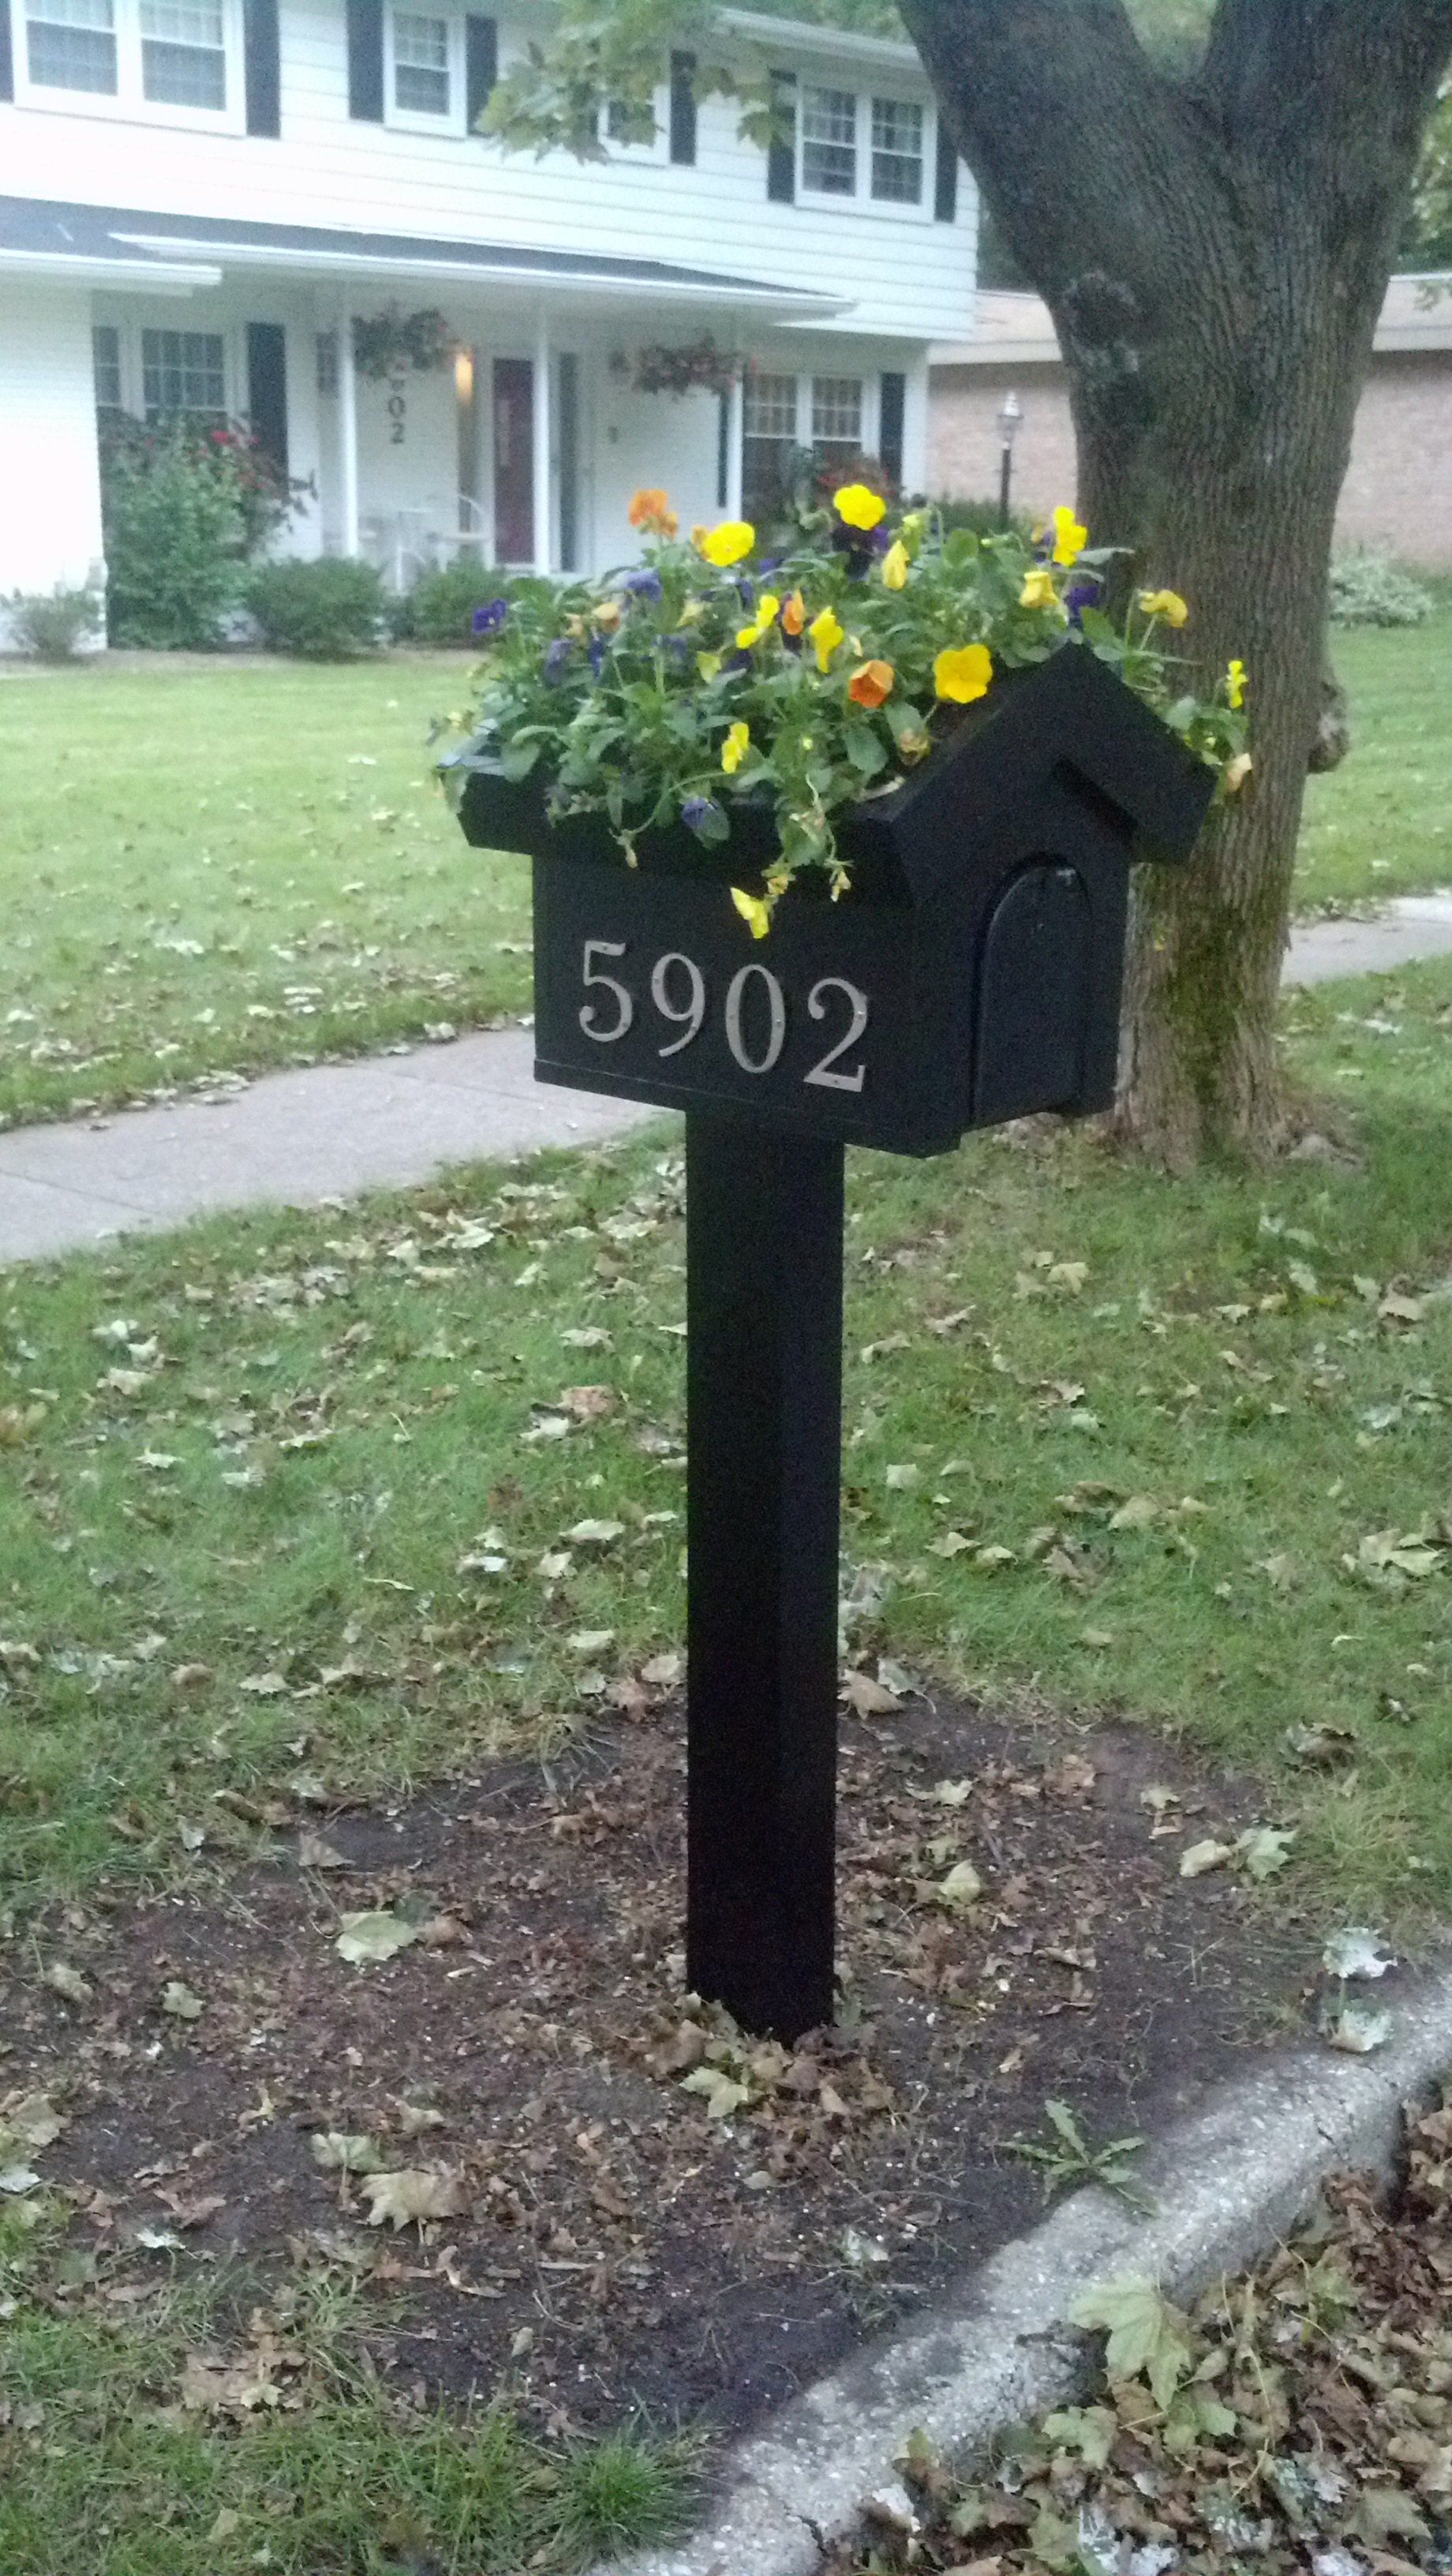 Bru Coffee Green Garden Green Roof Mailbox With Pansies Rear Access Door Too